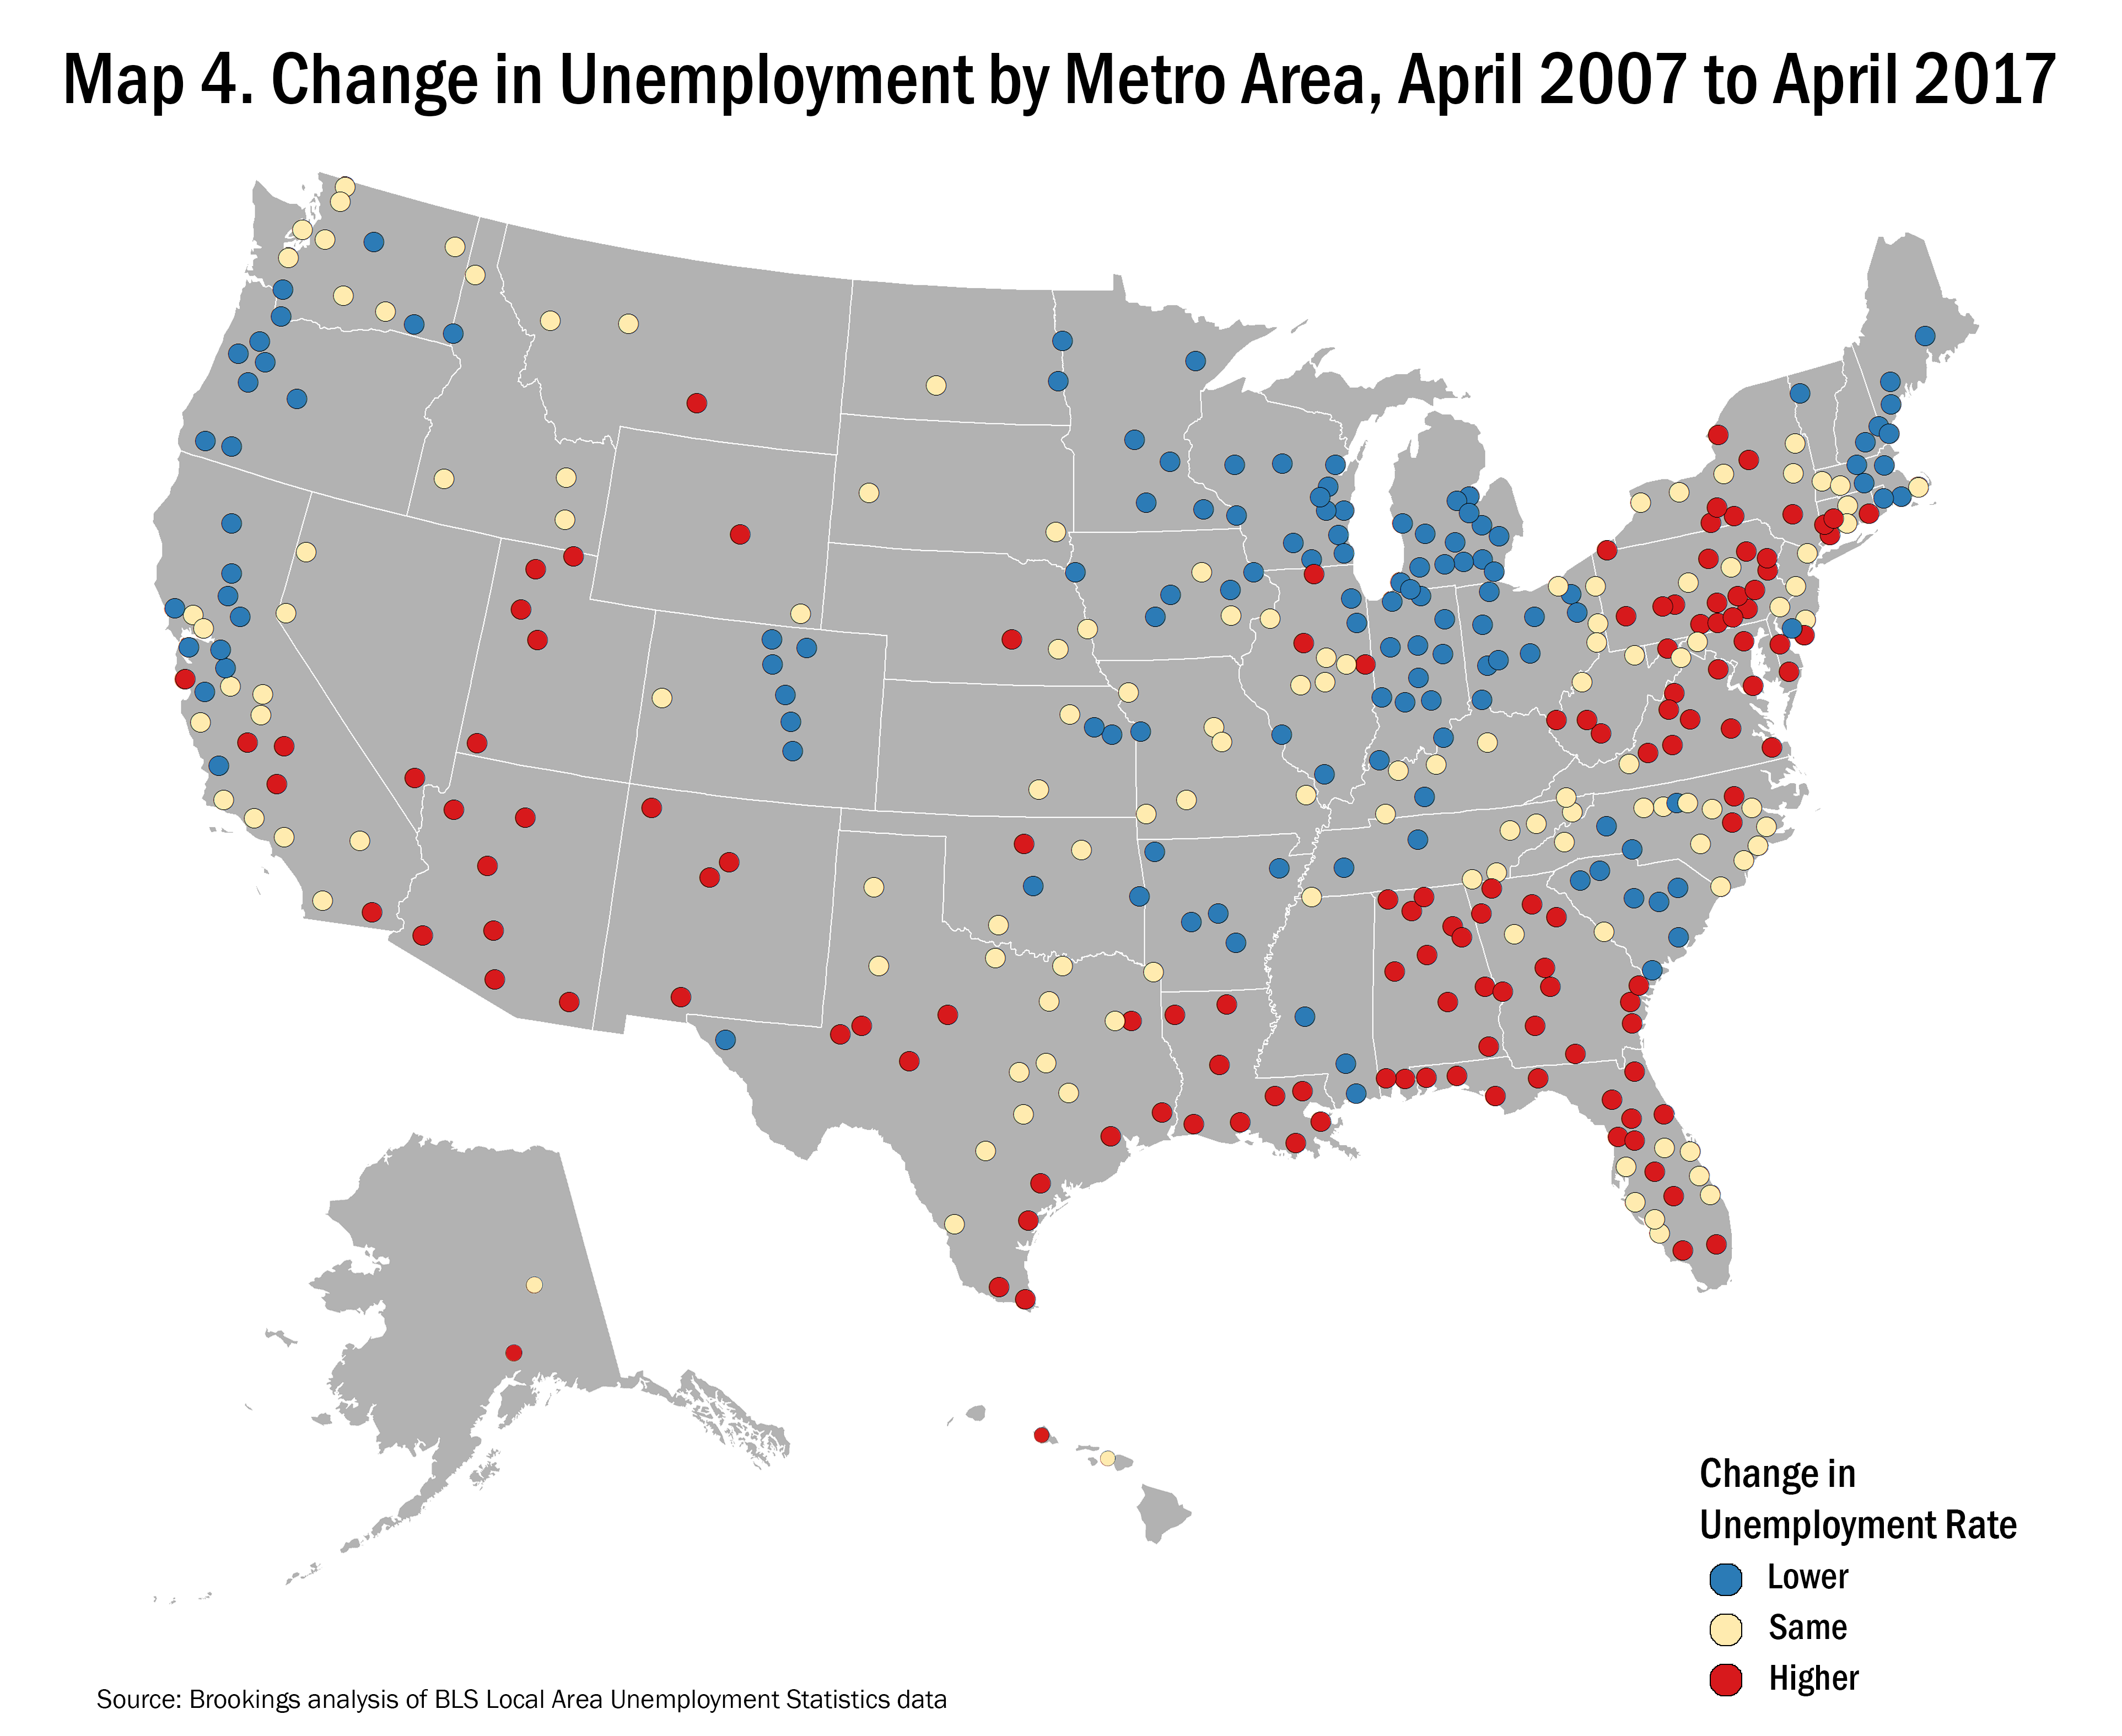 metro area unemployment trends buck the national narrative a Local Area Unemployment Statistics Map map of change in unemployment by metro area, april 2007 to april 2017 local area unemployment statistics map